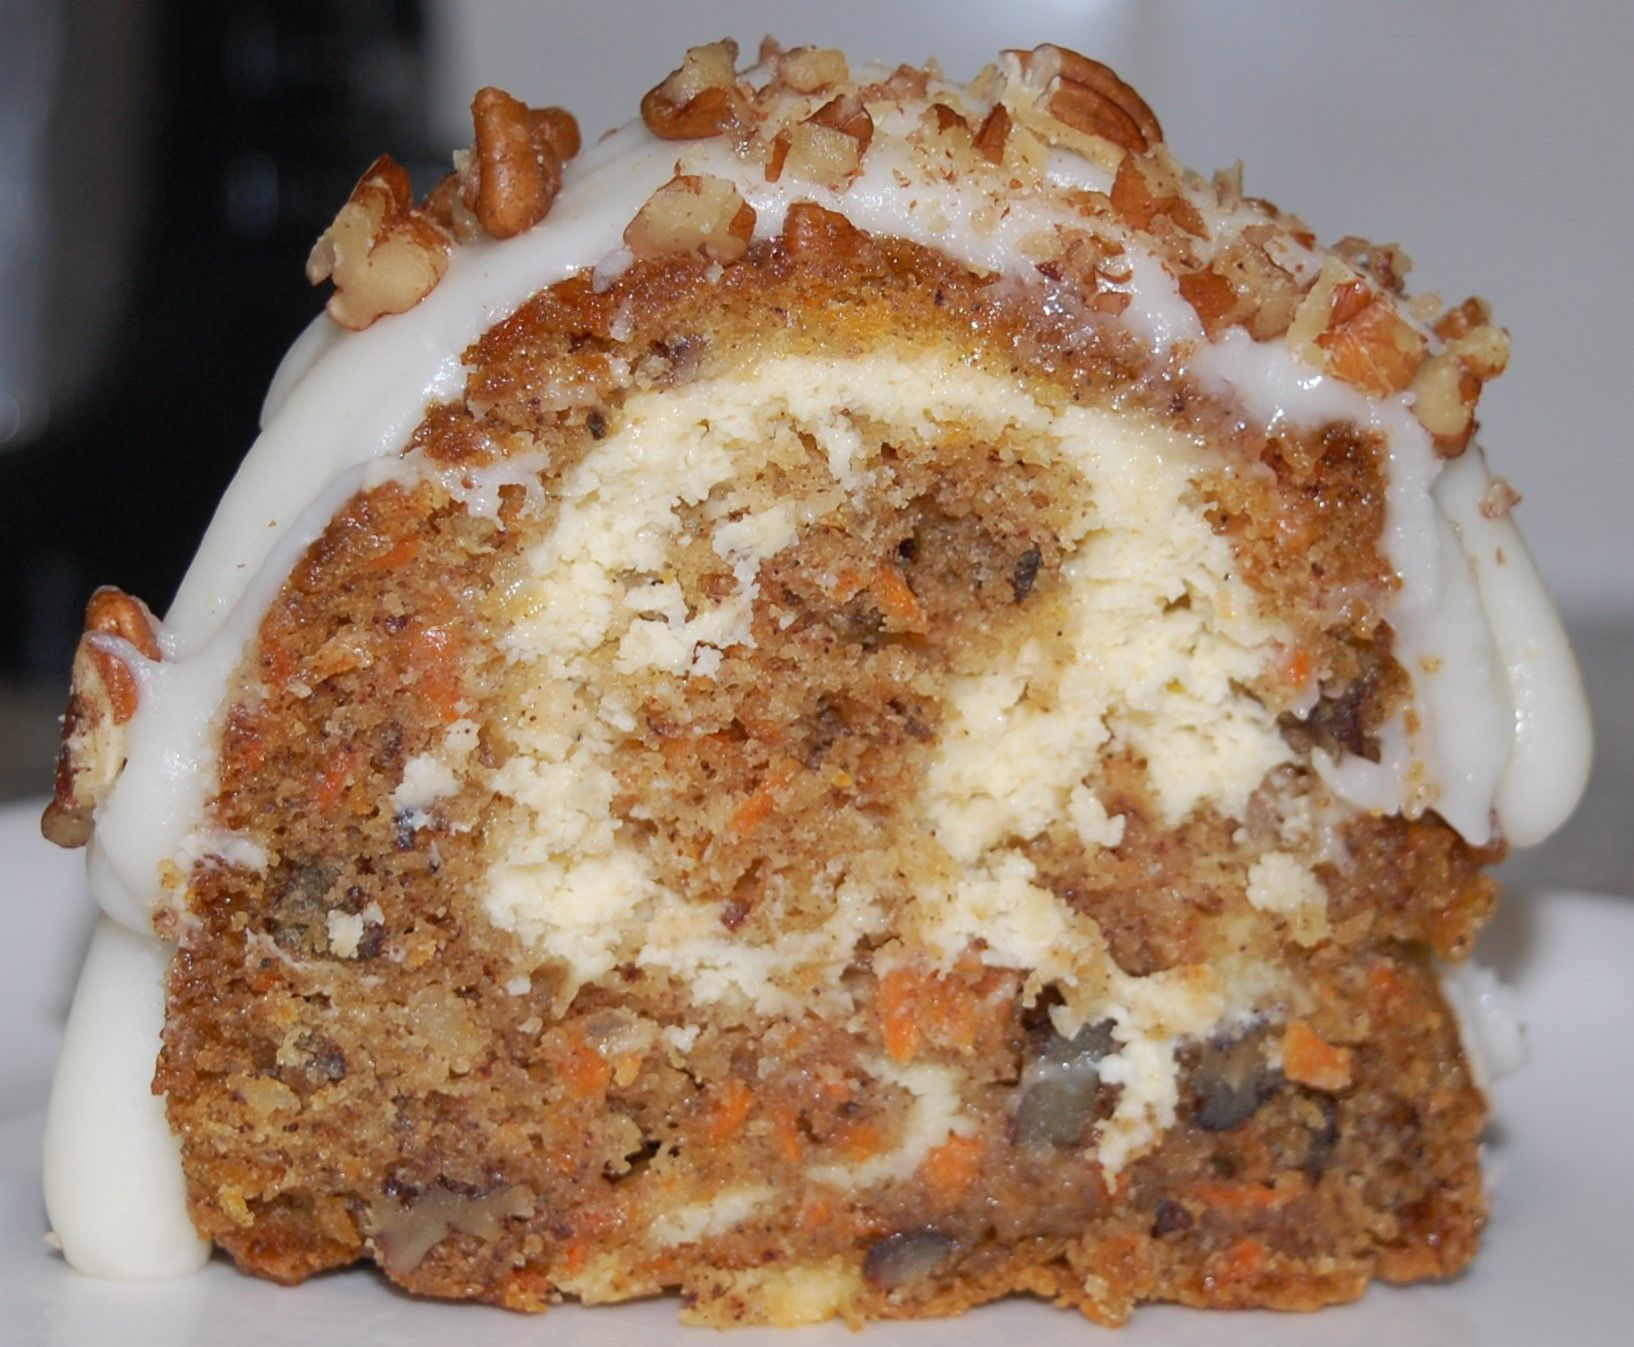 Carrot bundt cake with cheesecake filling and cream cheese